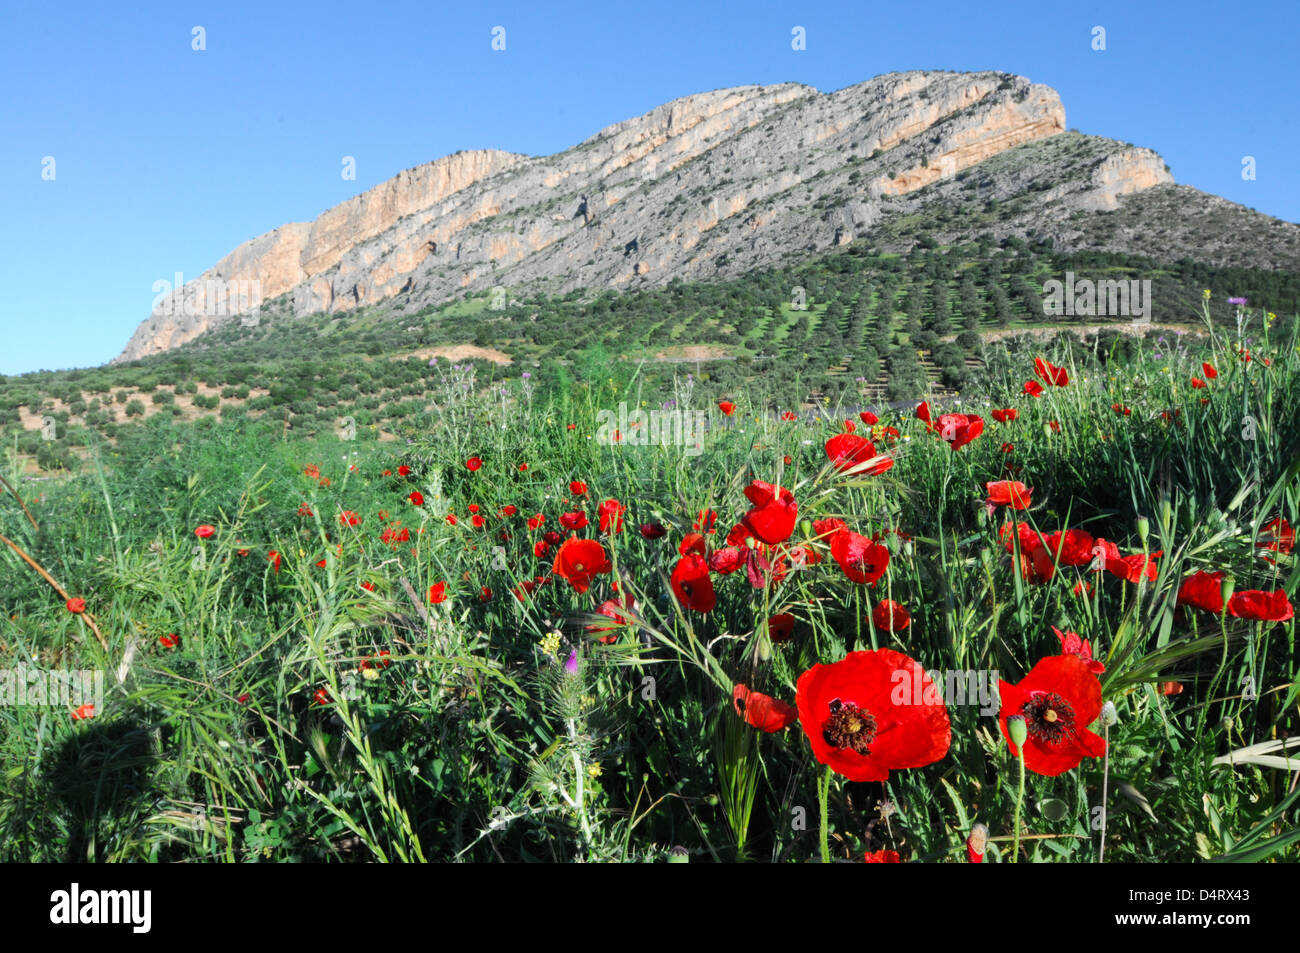 Some poppies - Stock Image